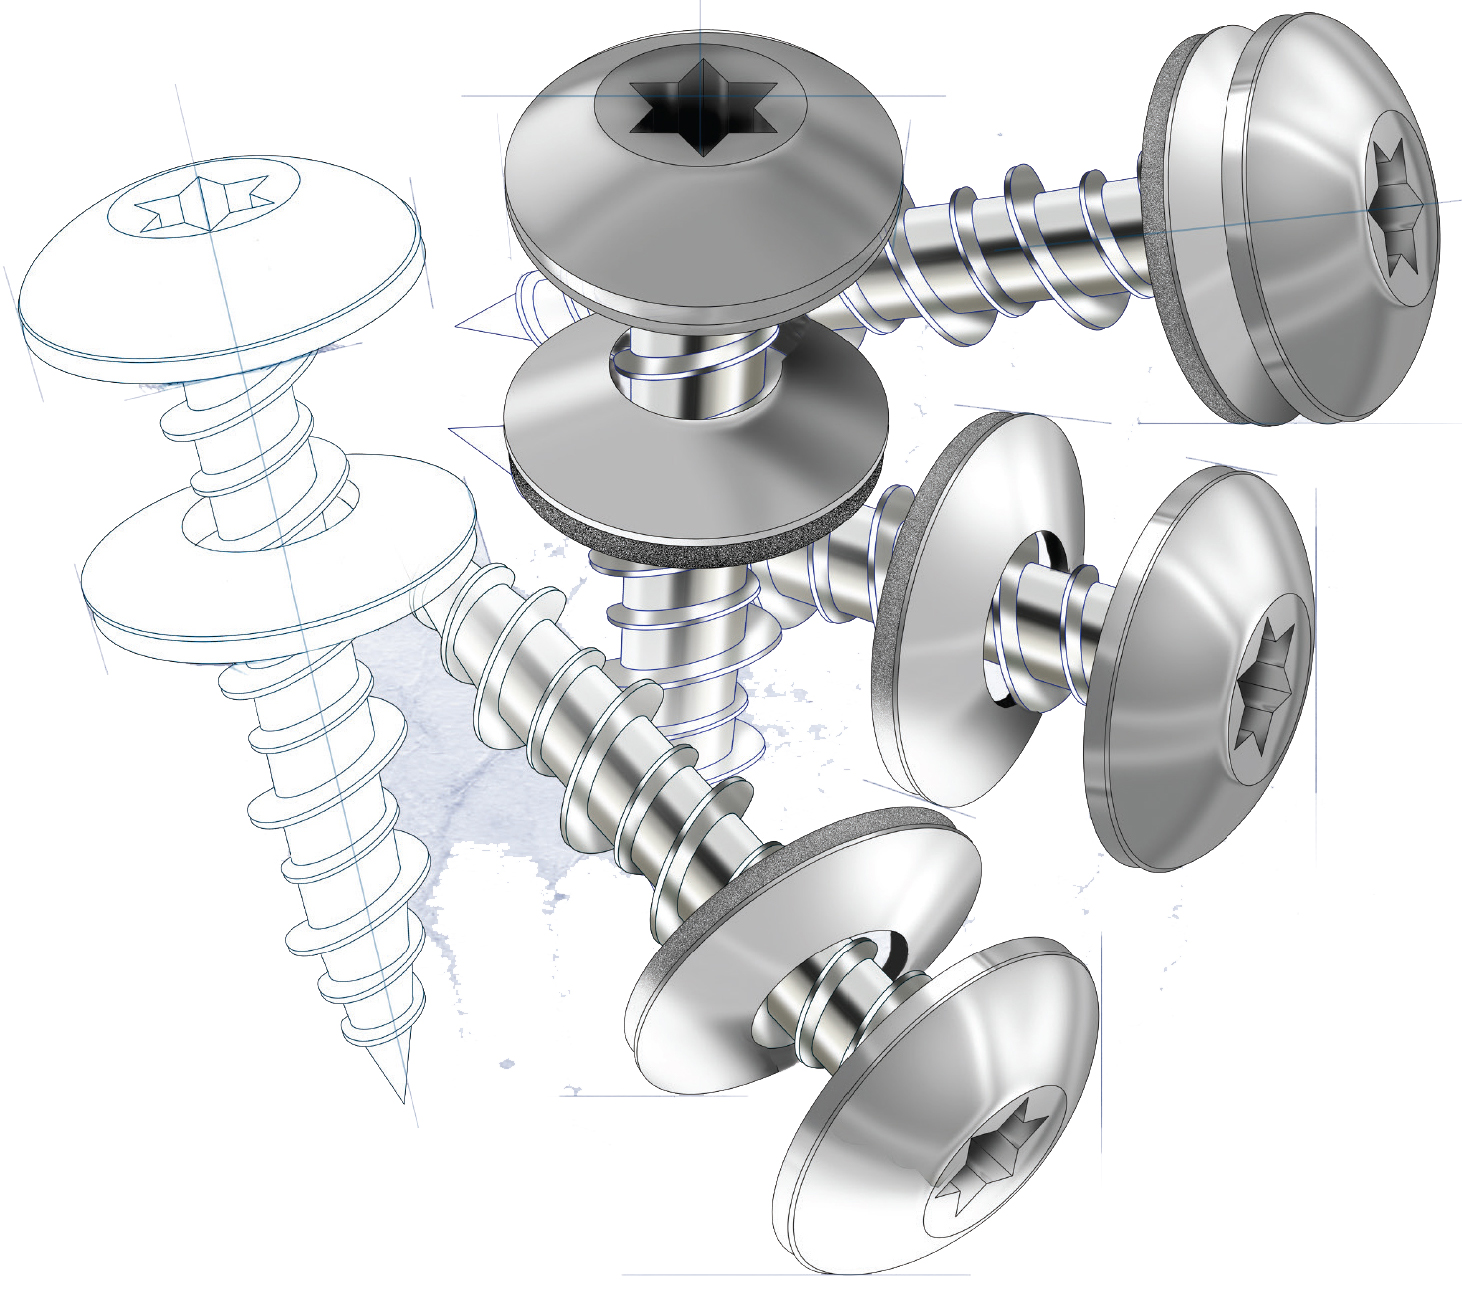 Screws are our standard fasteners, Stronger buildings start with the materials we use.